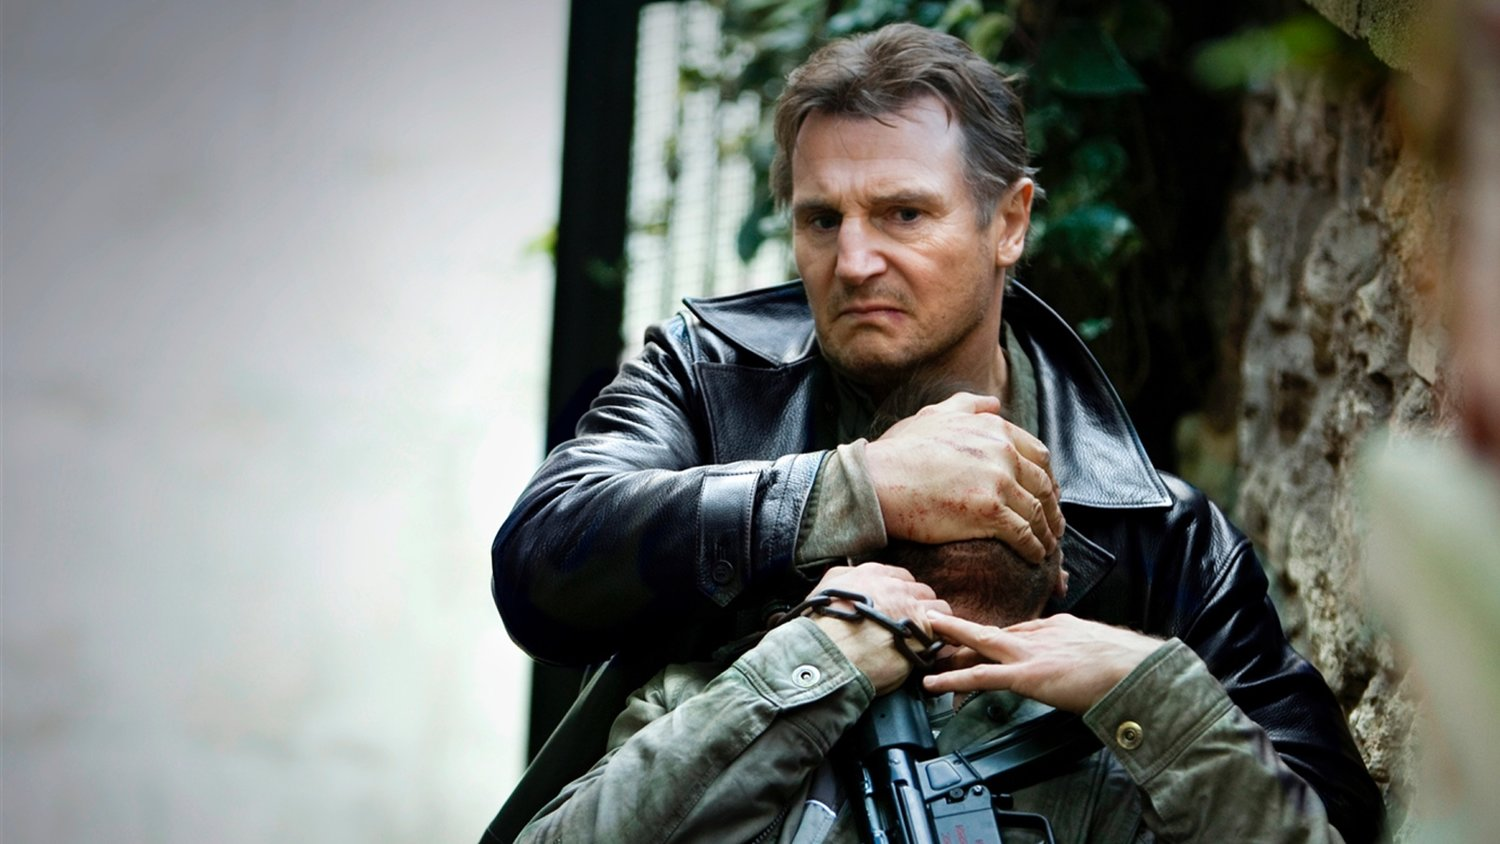 Liam Neeson Will Play a Snowplow Driver Hell-Bent on Revenge in HARD POWDER